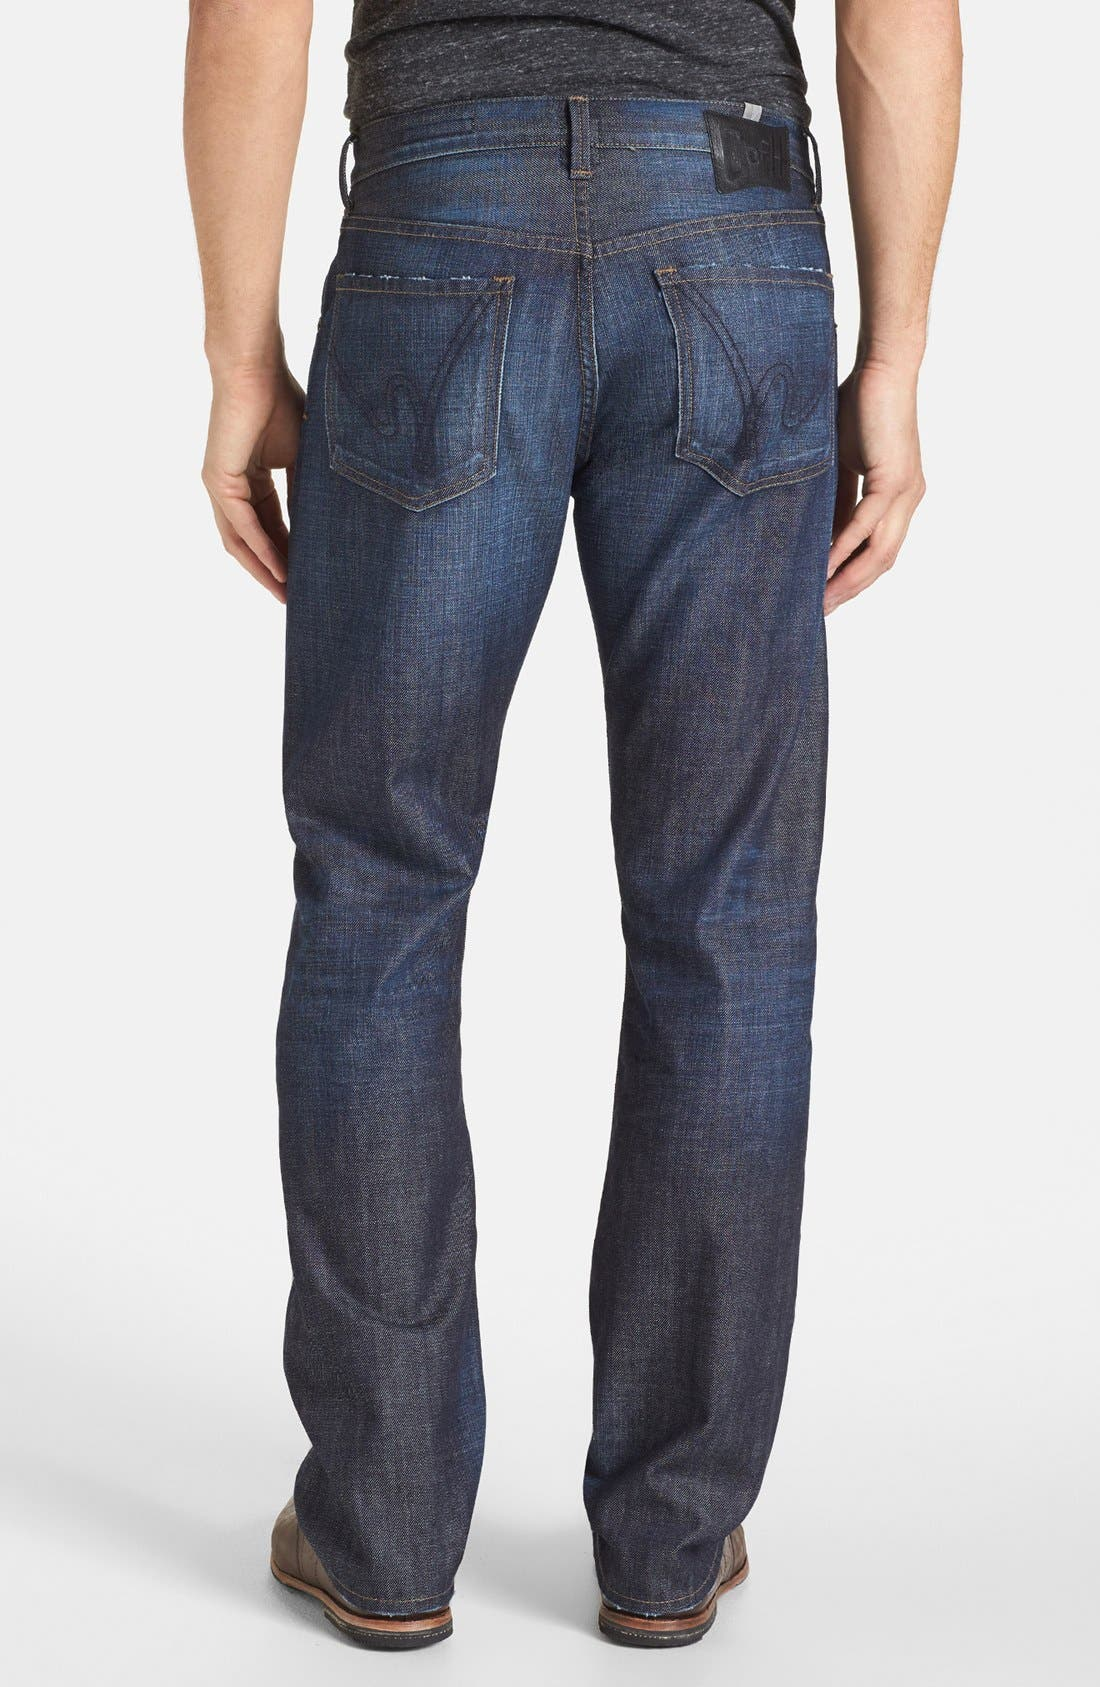 Alternate Image 2  - Citizens of Humanity 'Perfect' Relaxed Leg Jeans (Colt)